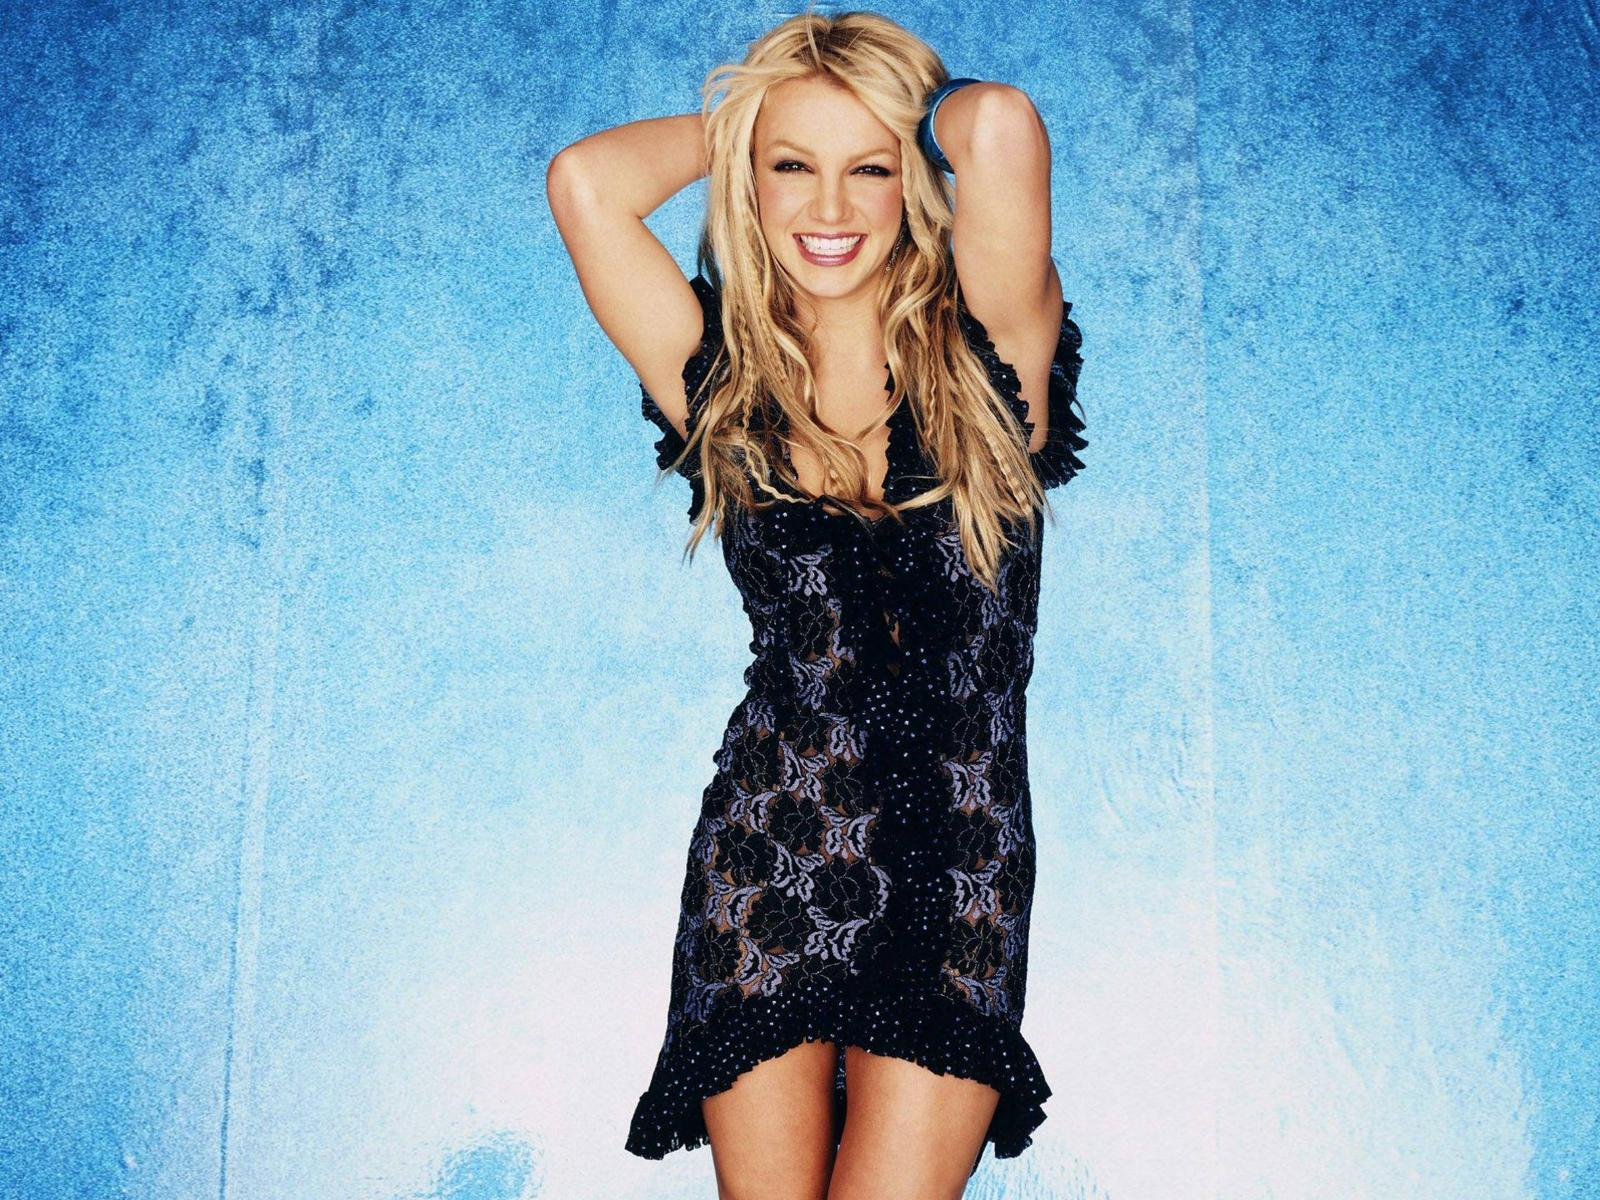 Nude wallpapers brittney spears #1